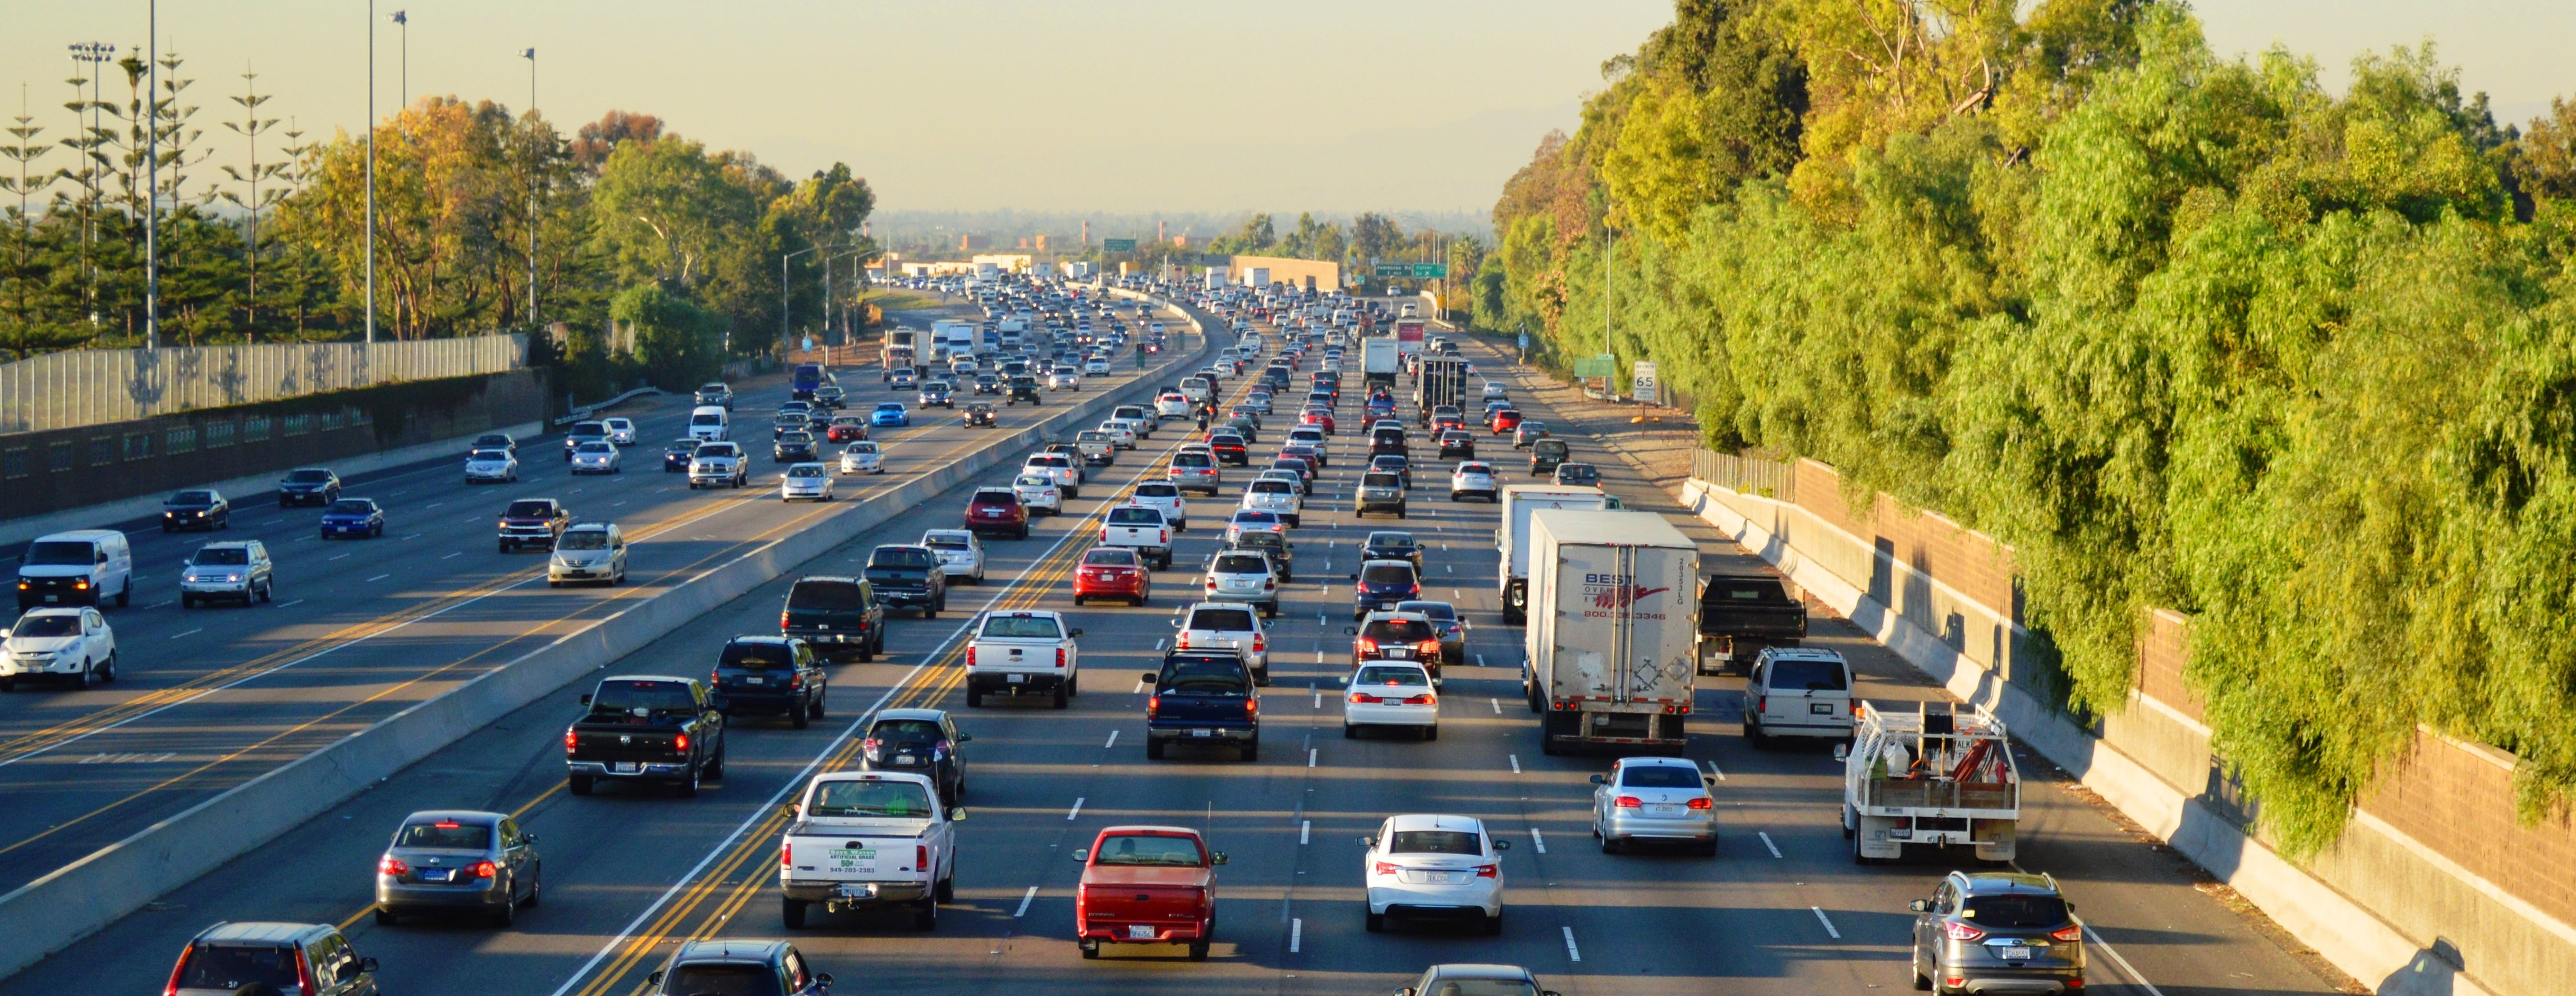 Proposed Improvements To I 5 Through Irvine And Tustin